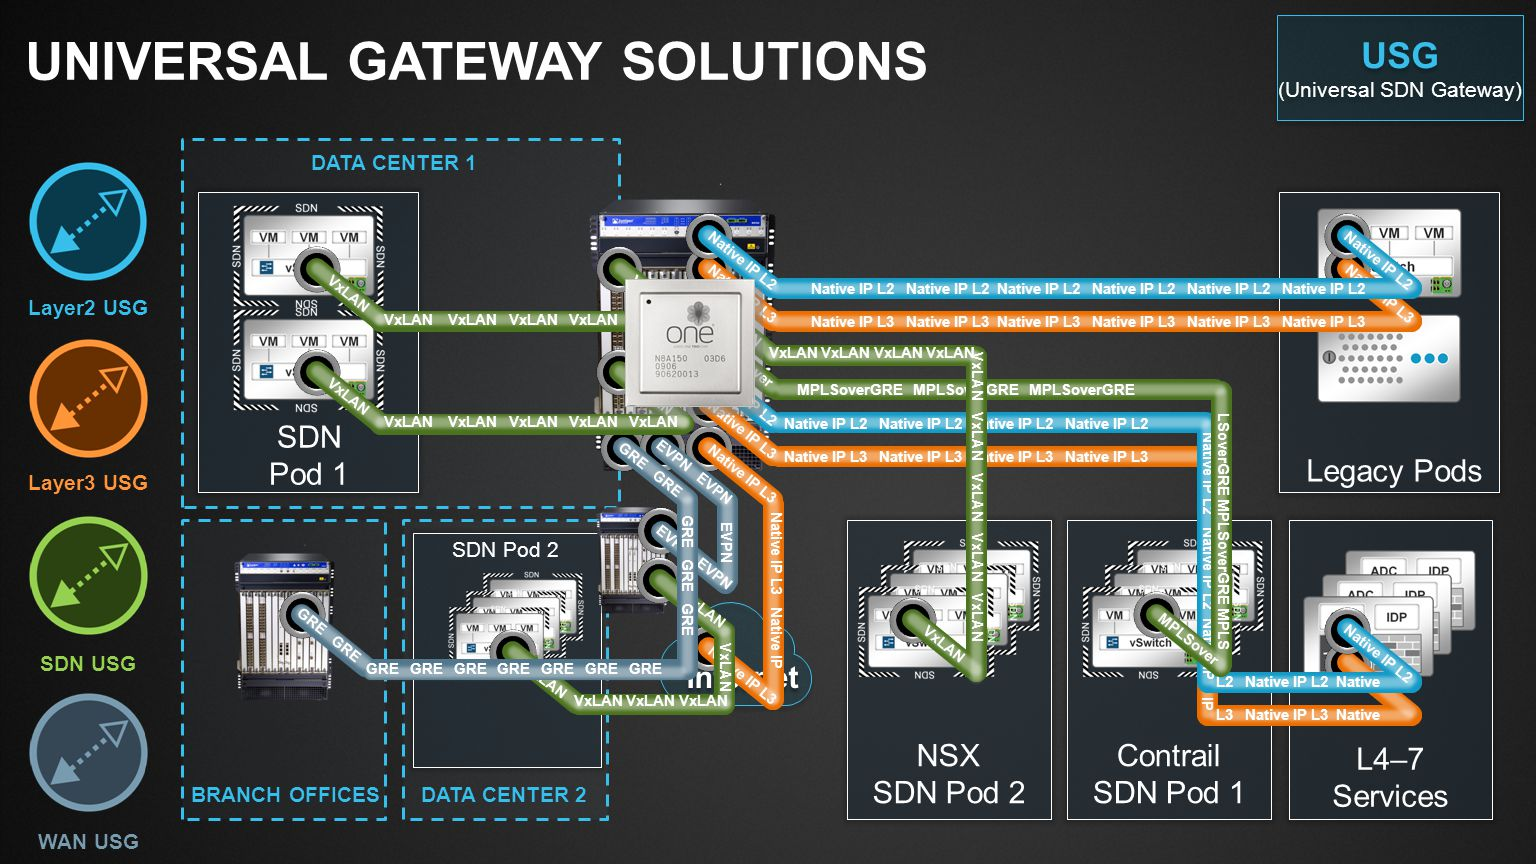 Universal gateway solutions